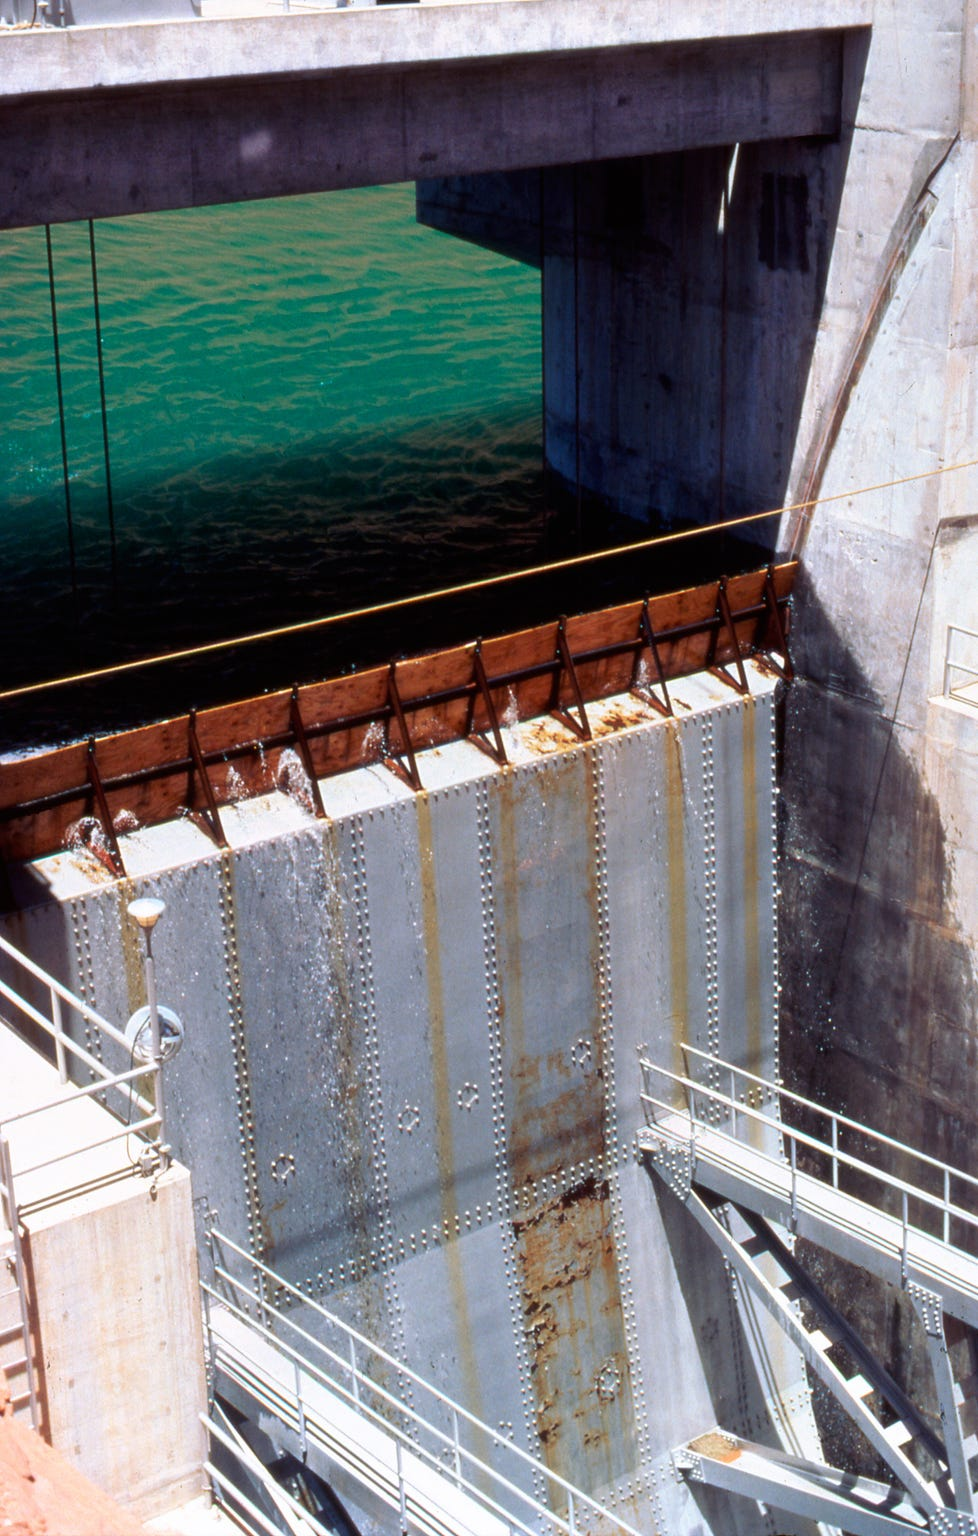 Lake Powell water levels rose steadily during June and July 1983, forcing the Bureau of Reclamation to use plywood barriers to keep the lake from spilling over the closed gates on Glen Canyon Dam.